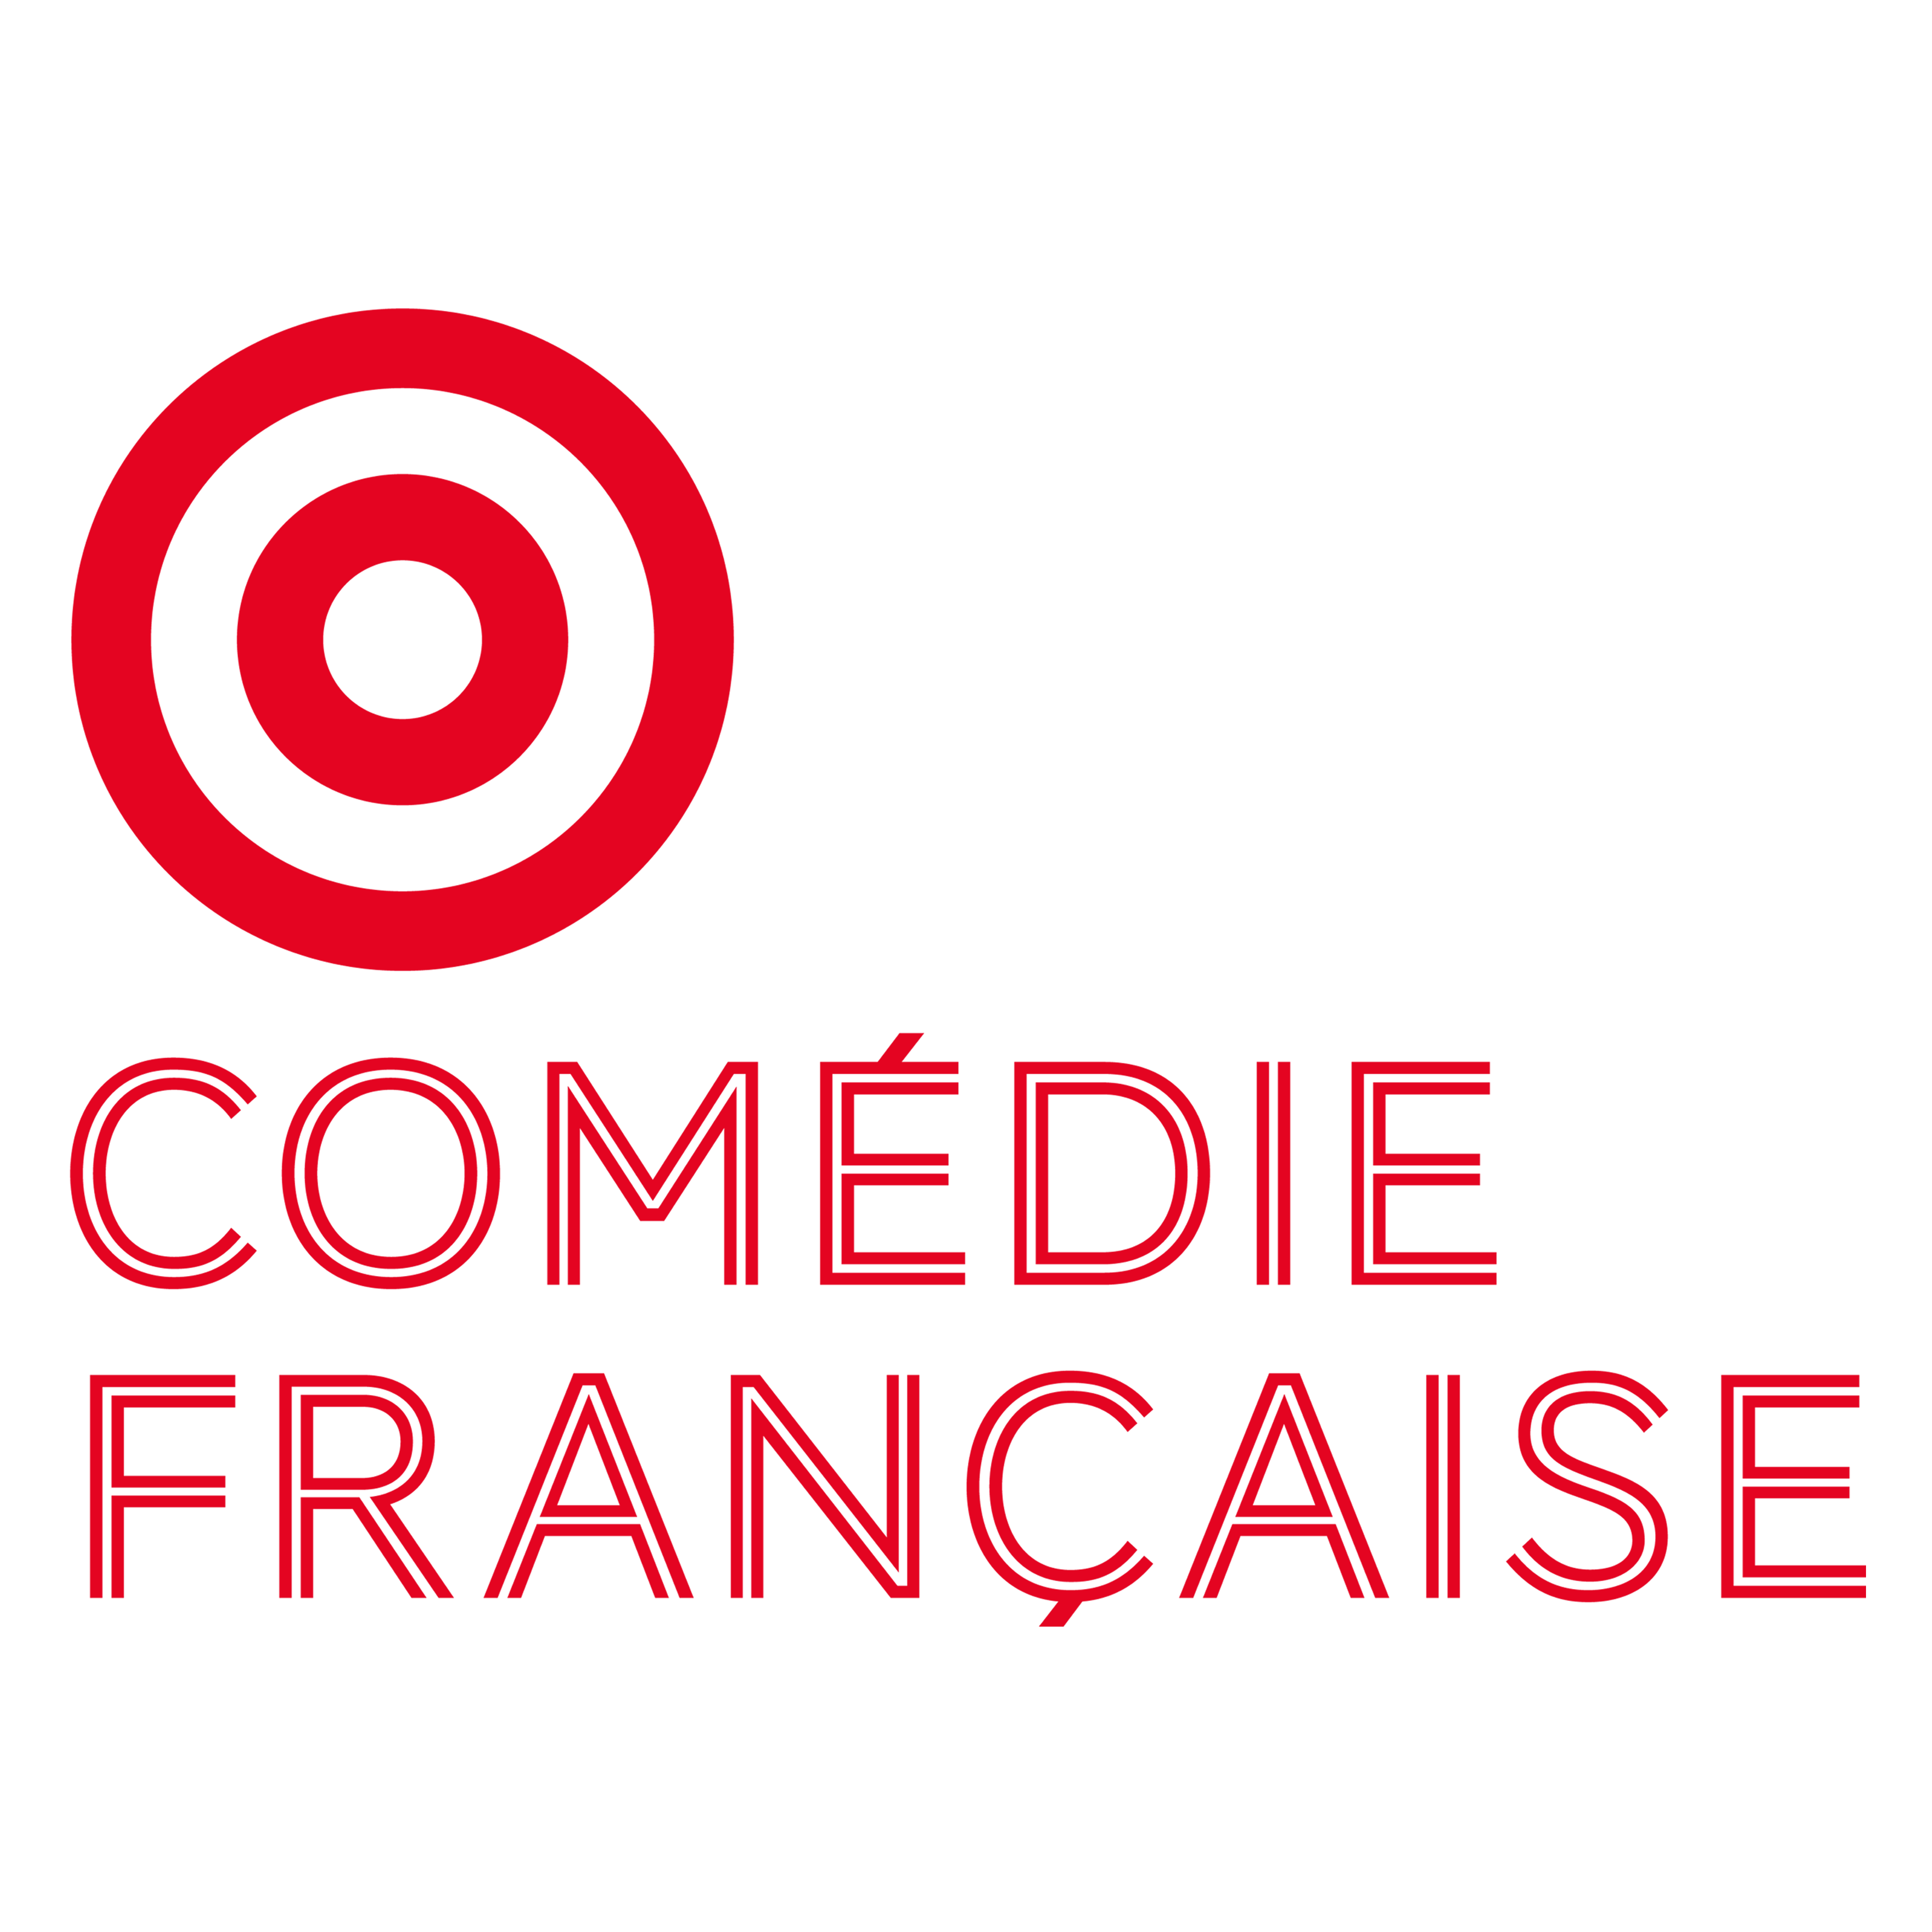 Comedie Francaise 2018 2019 In Cinemas Pathe Live